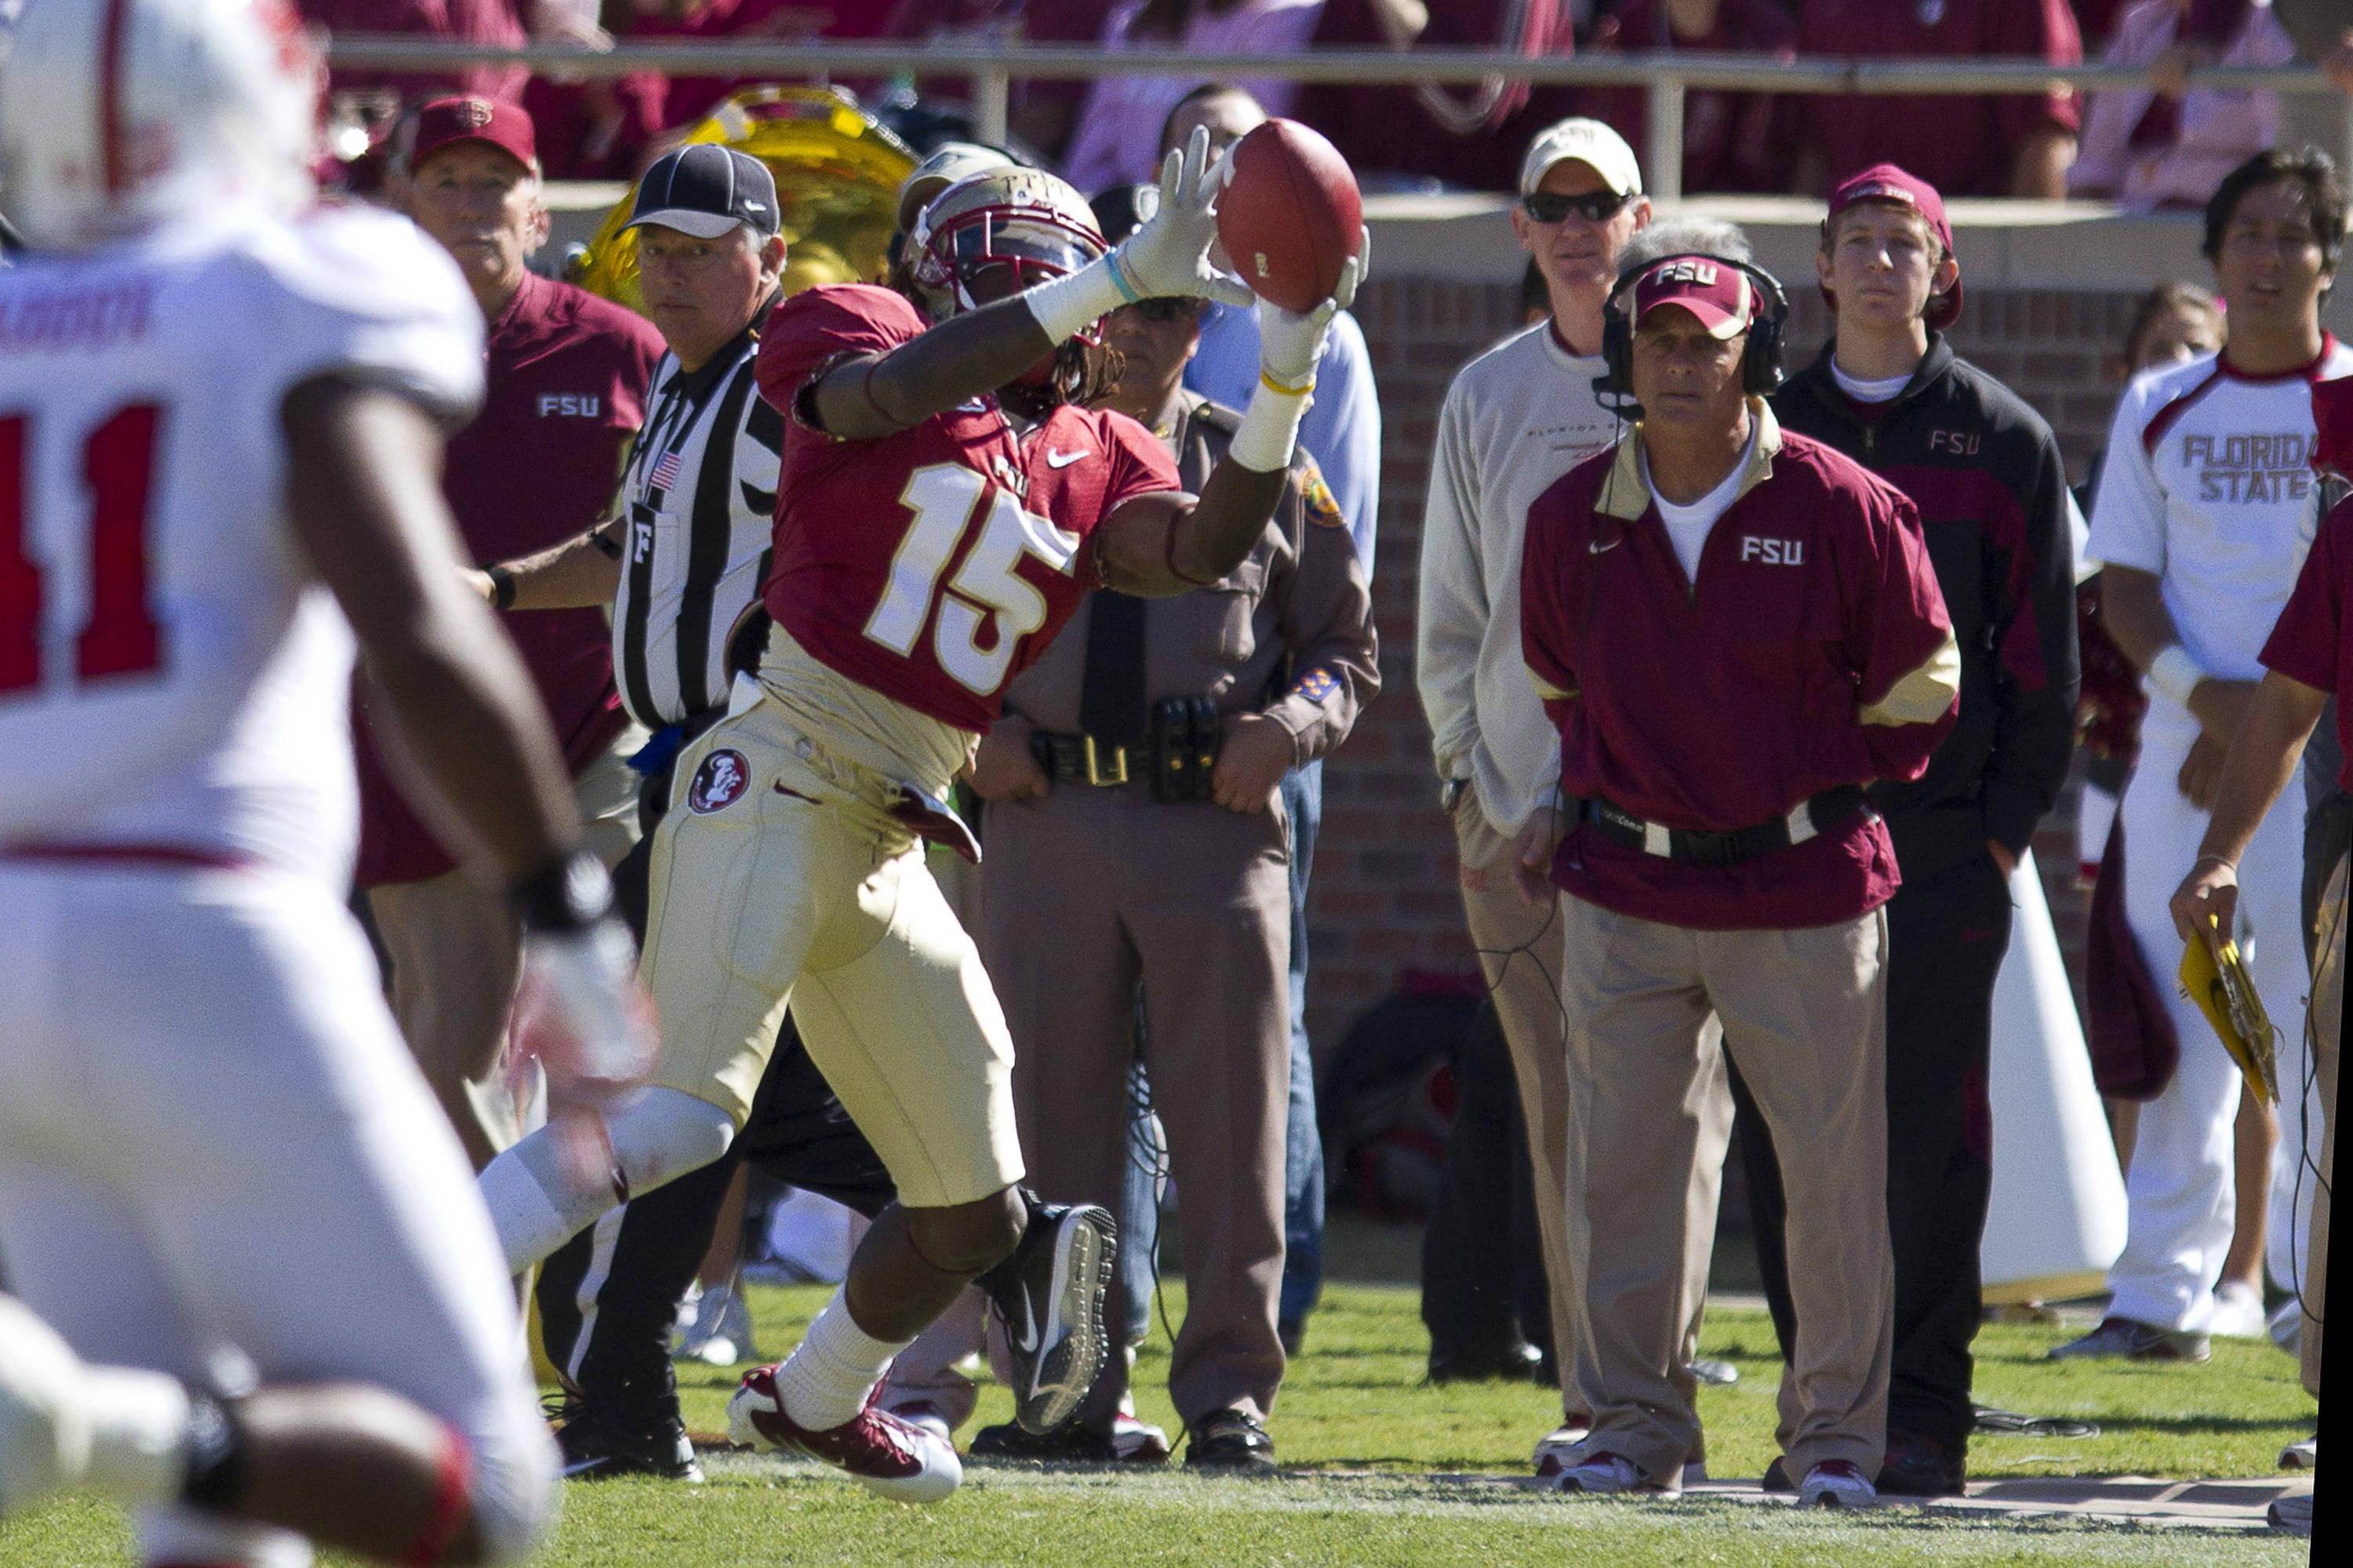 Greg Dent (15) catches a pass during the football game against NC State on October 29, 2011.